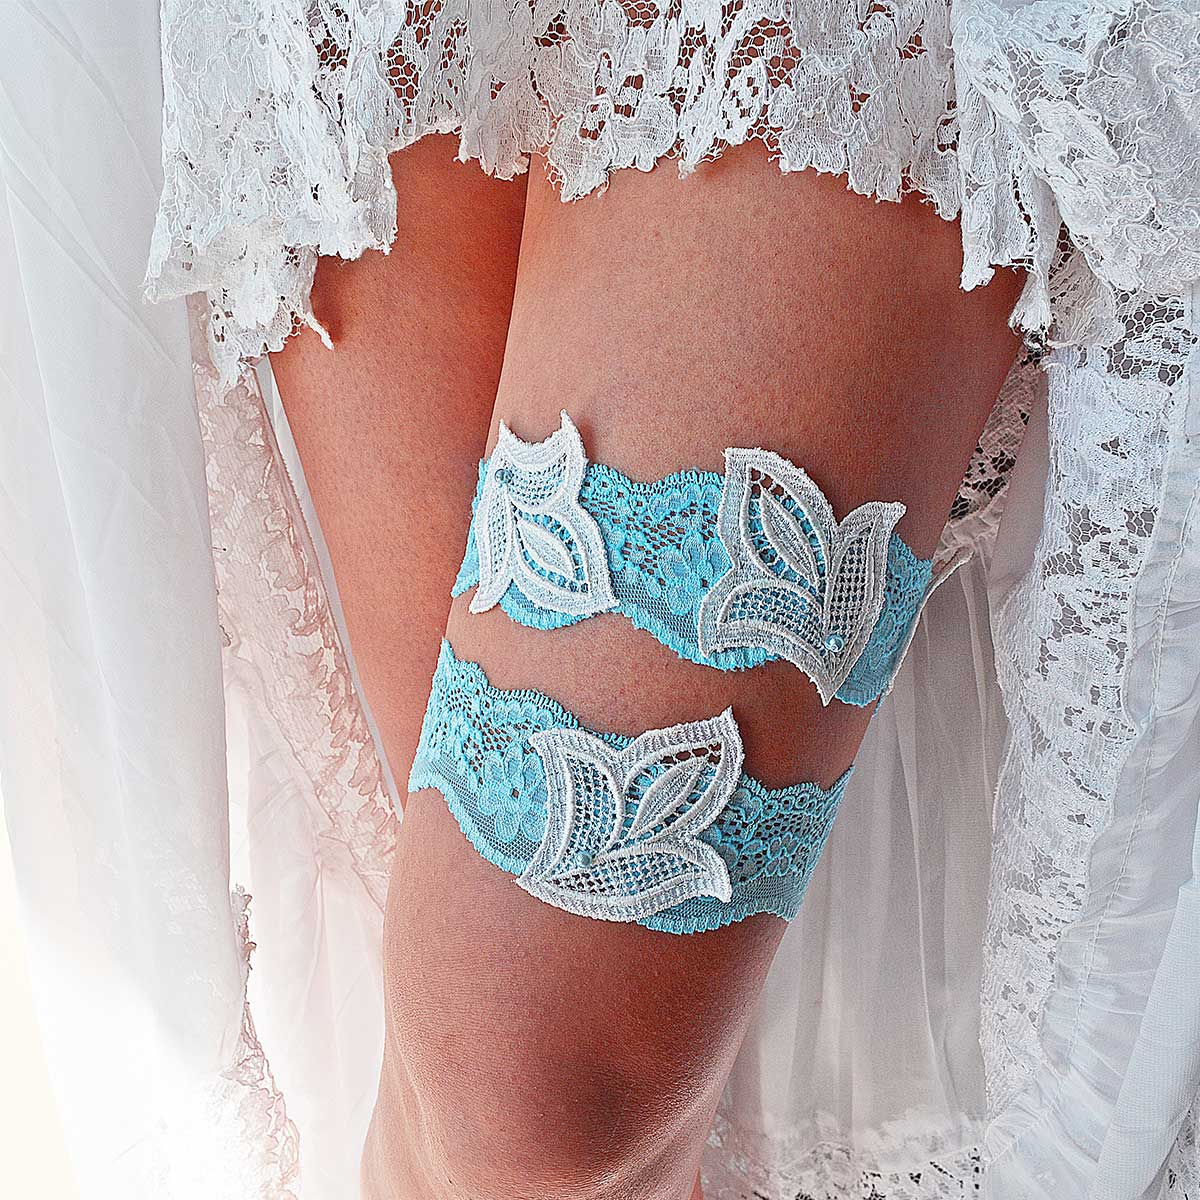 Sky Blue Bridal Garter With Pearls & Ivory Leaf Appliques - Wedding Garter - SuzannaM Designs